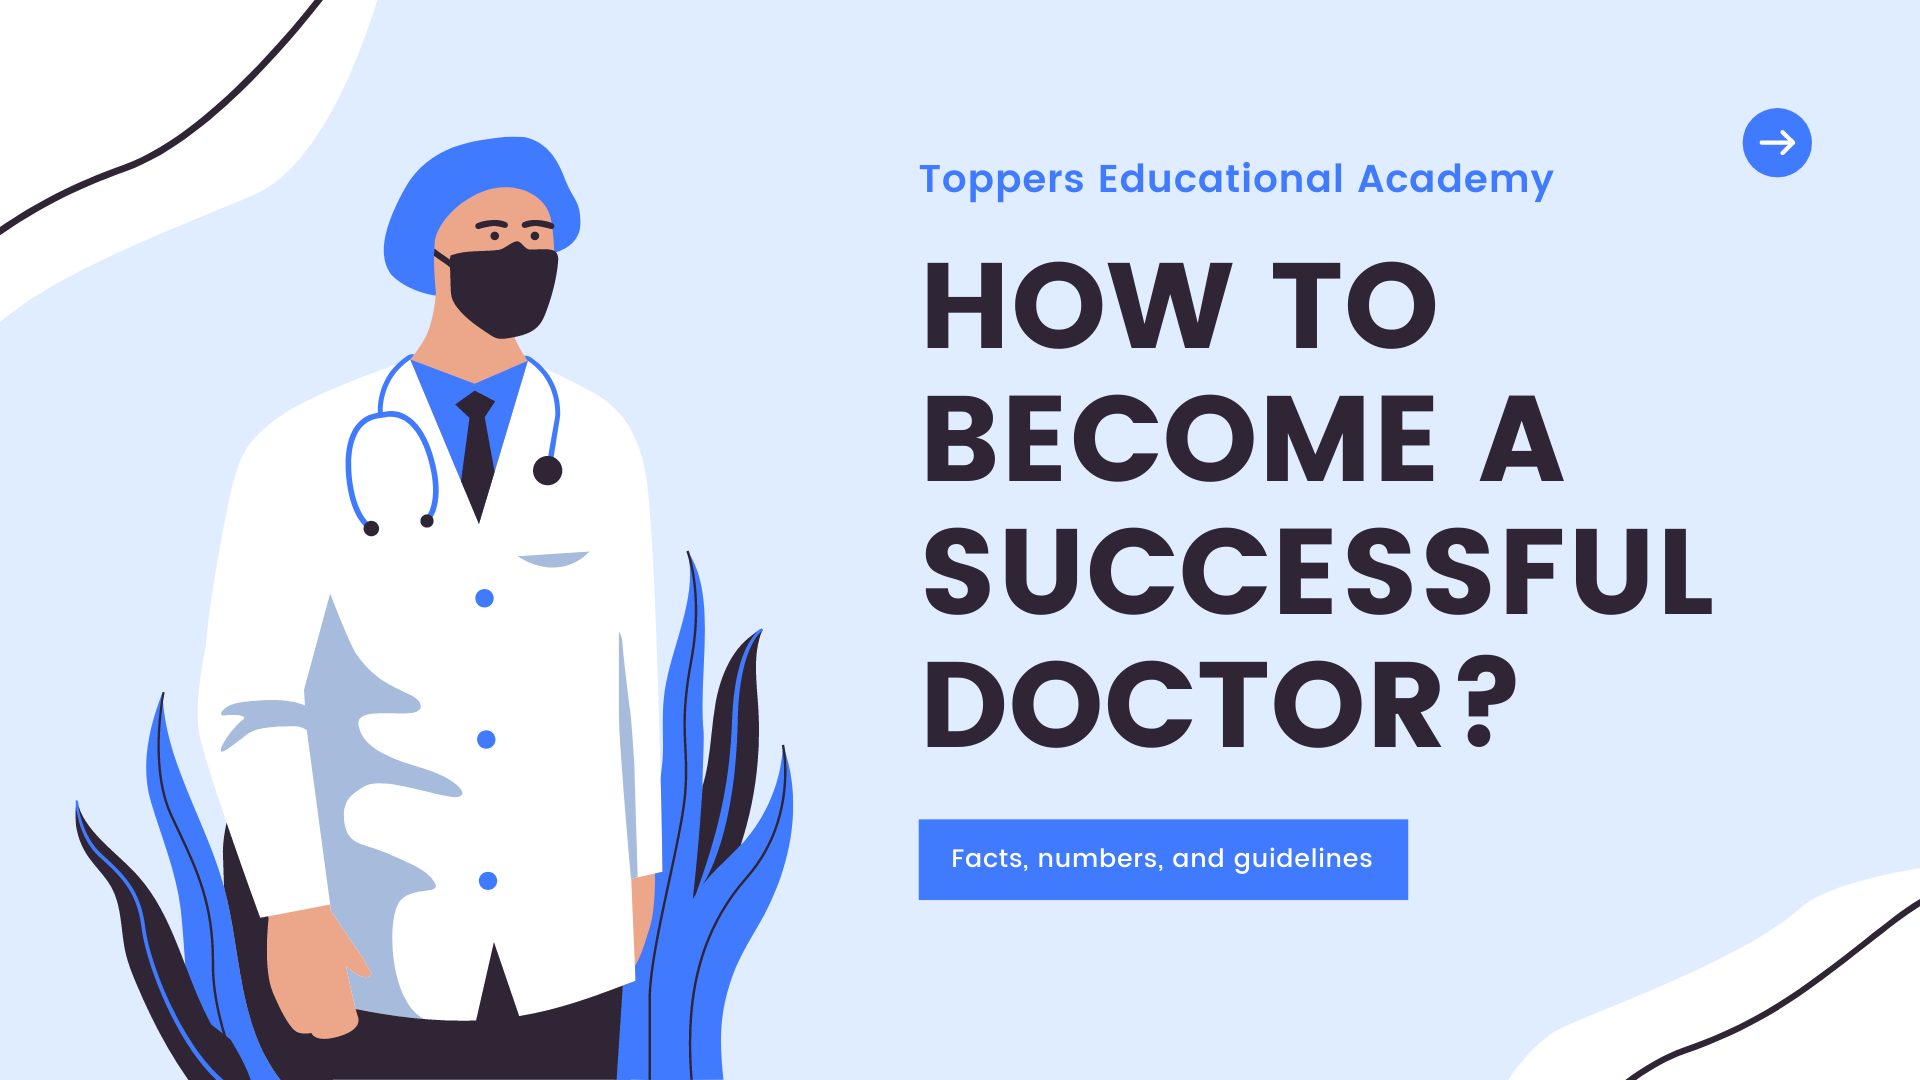 How to become a successful doctor?